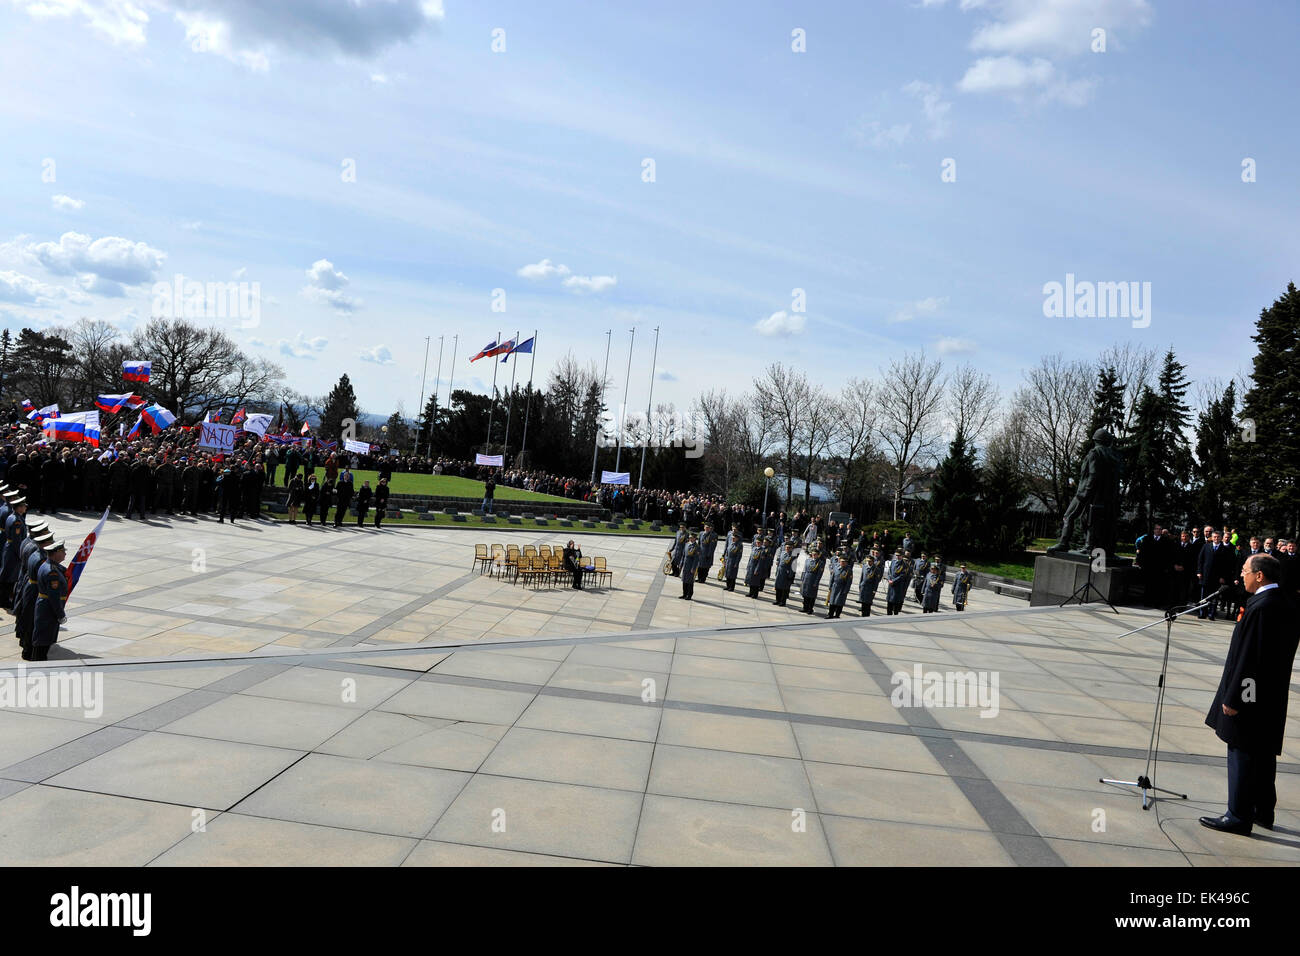 Russian Foreign Minister Sergey Lavrov speaks during a ceremony commemorating a liberation of the Slovak capital - Stock Image